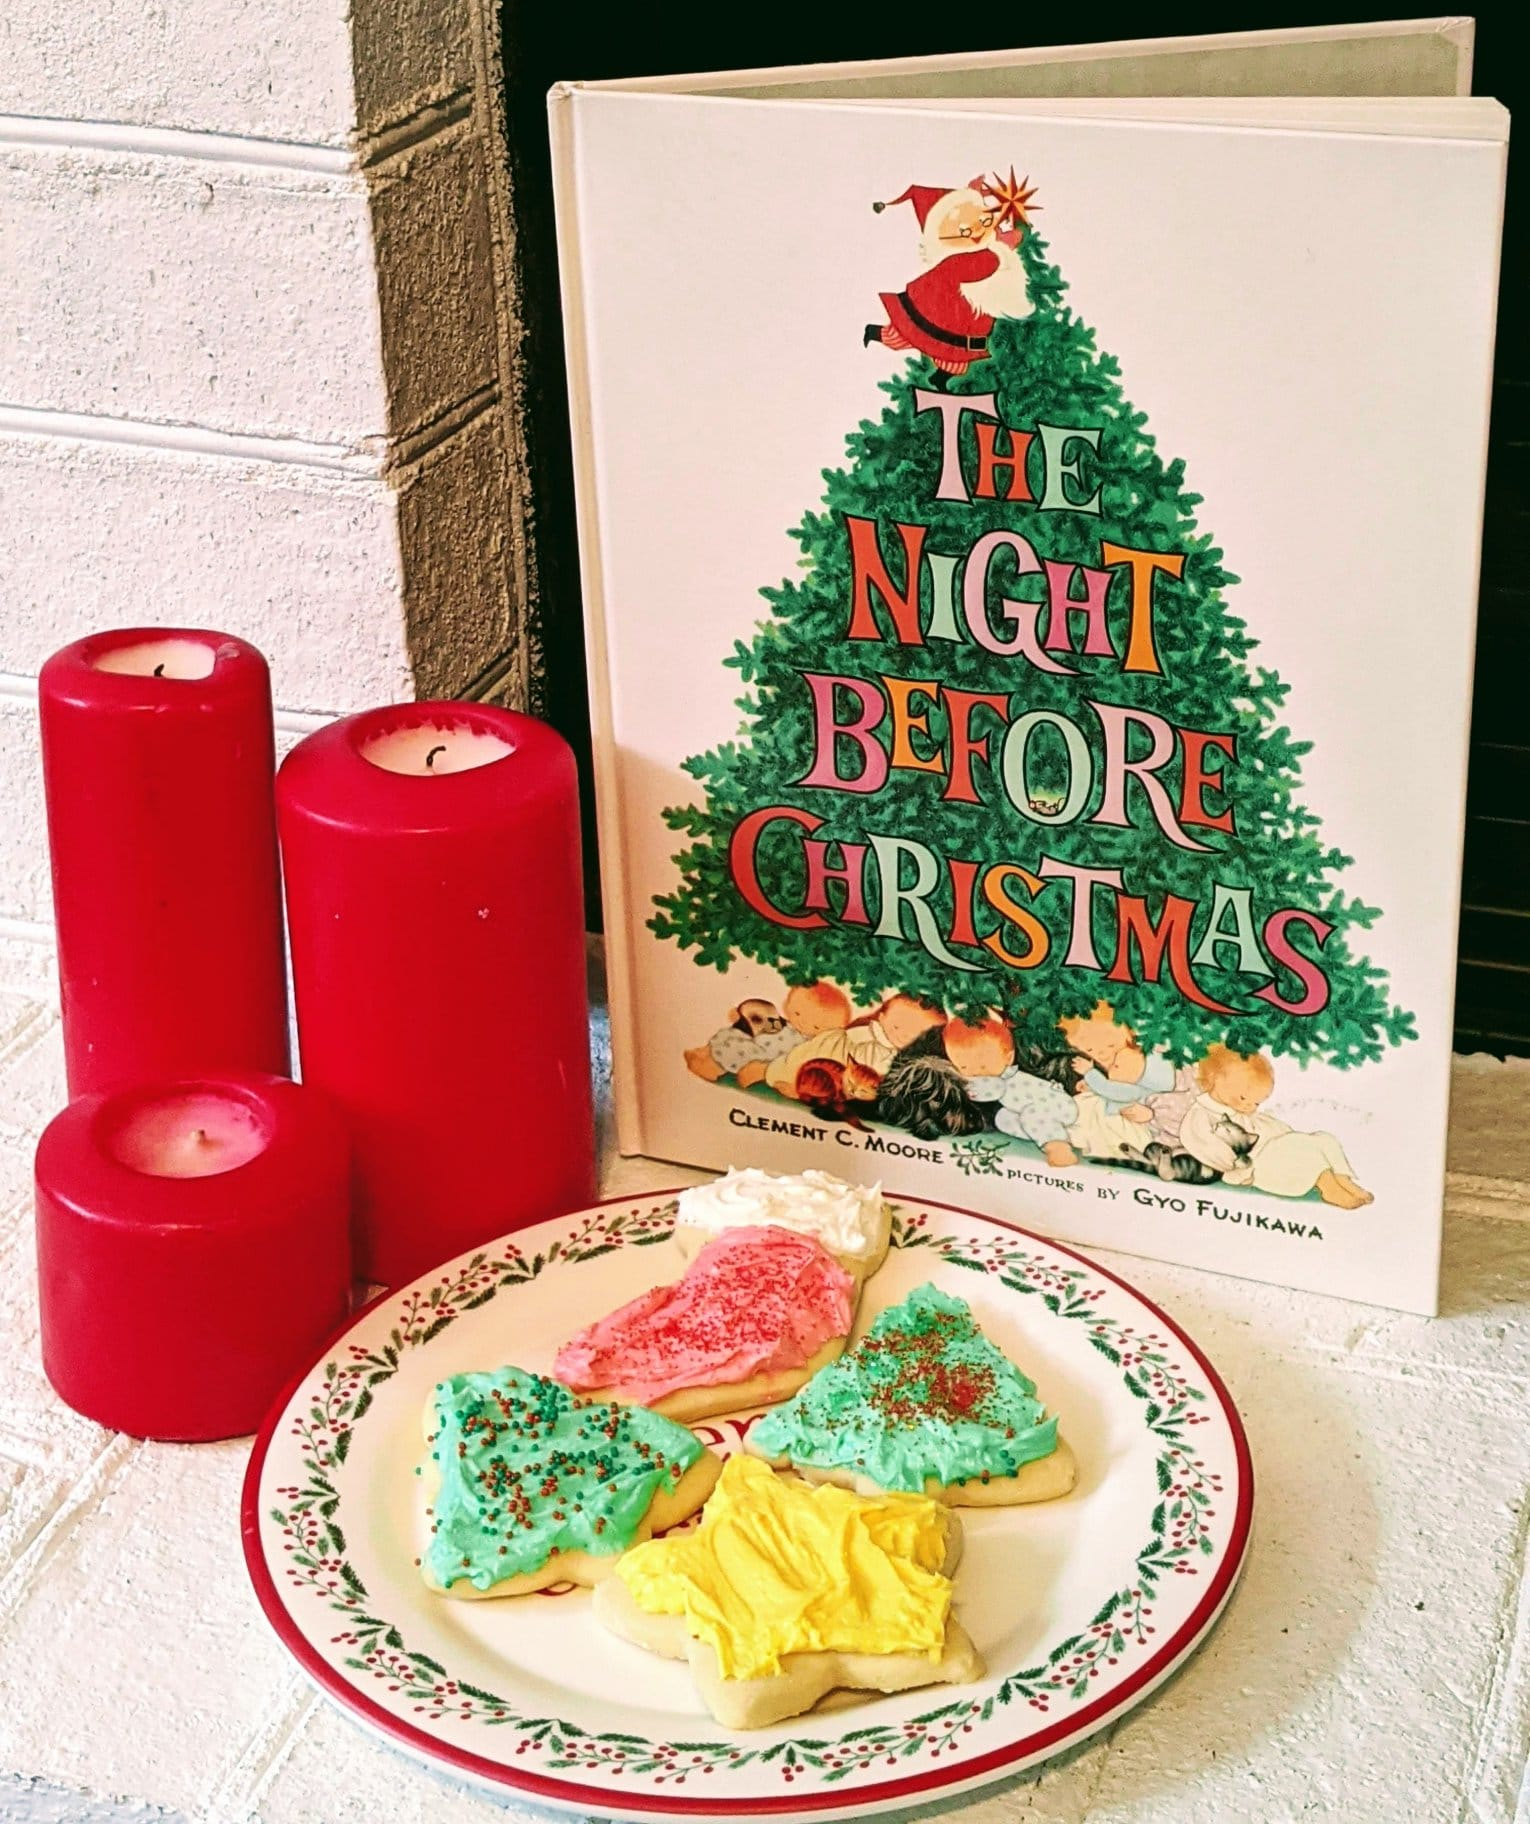 frosted sugar cookies in ront of Christmas book